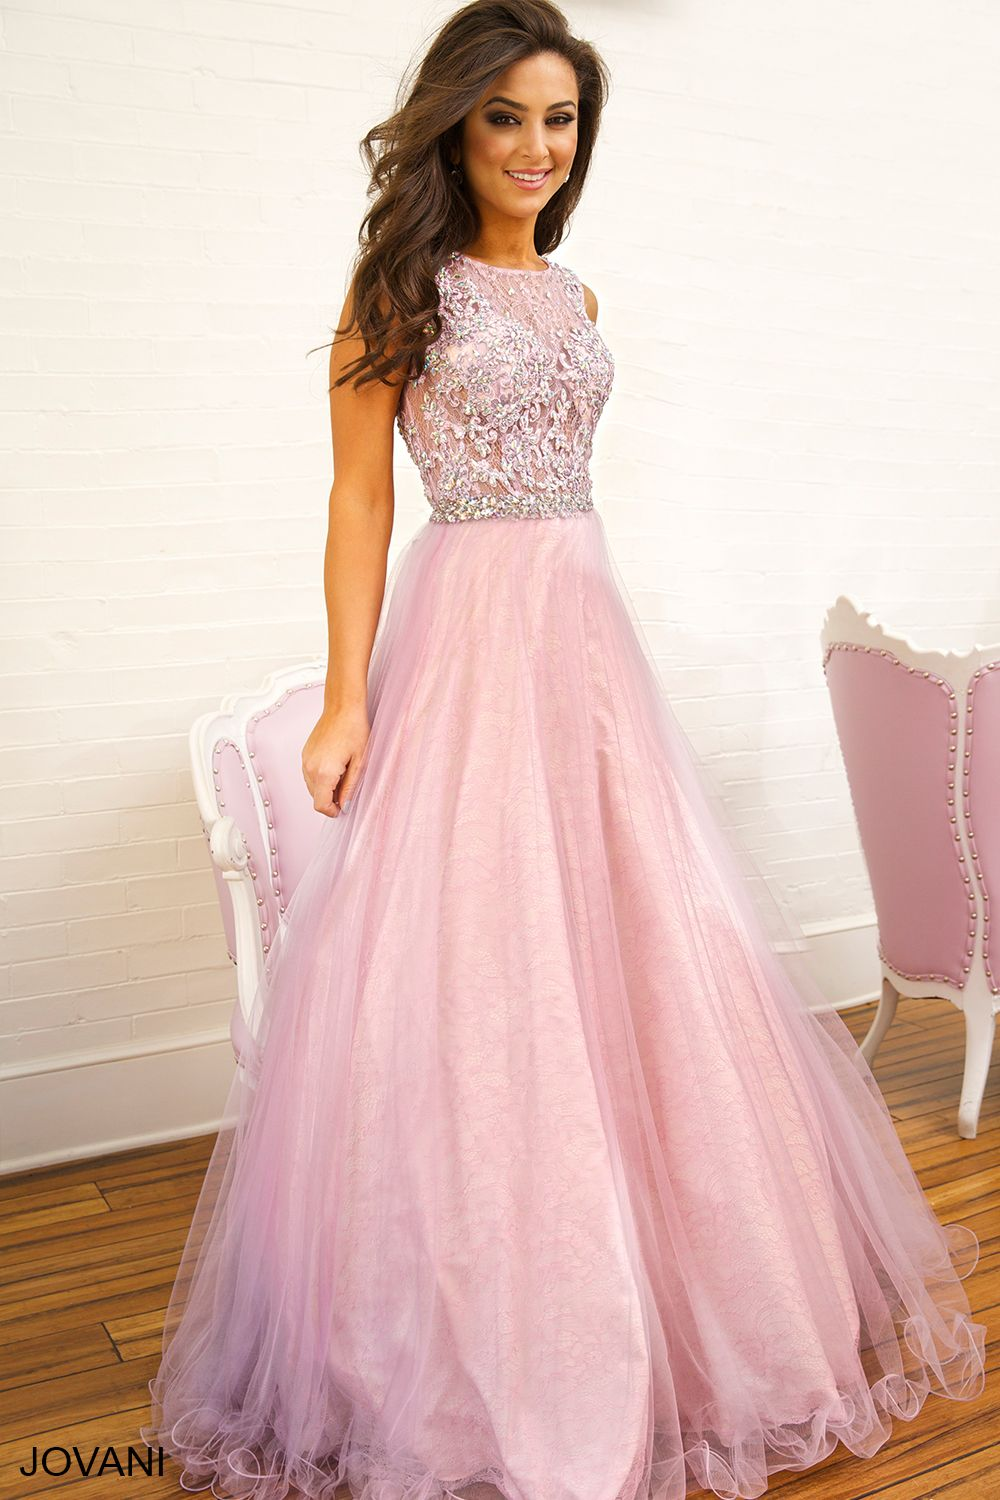 Pin by trinity woodbury on formal pinterest prom gowns and formal